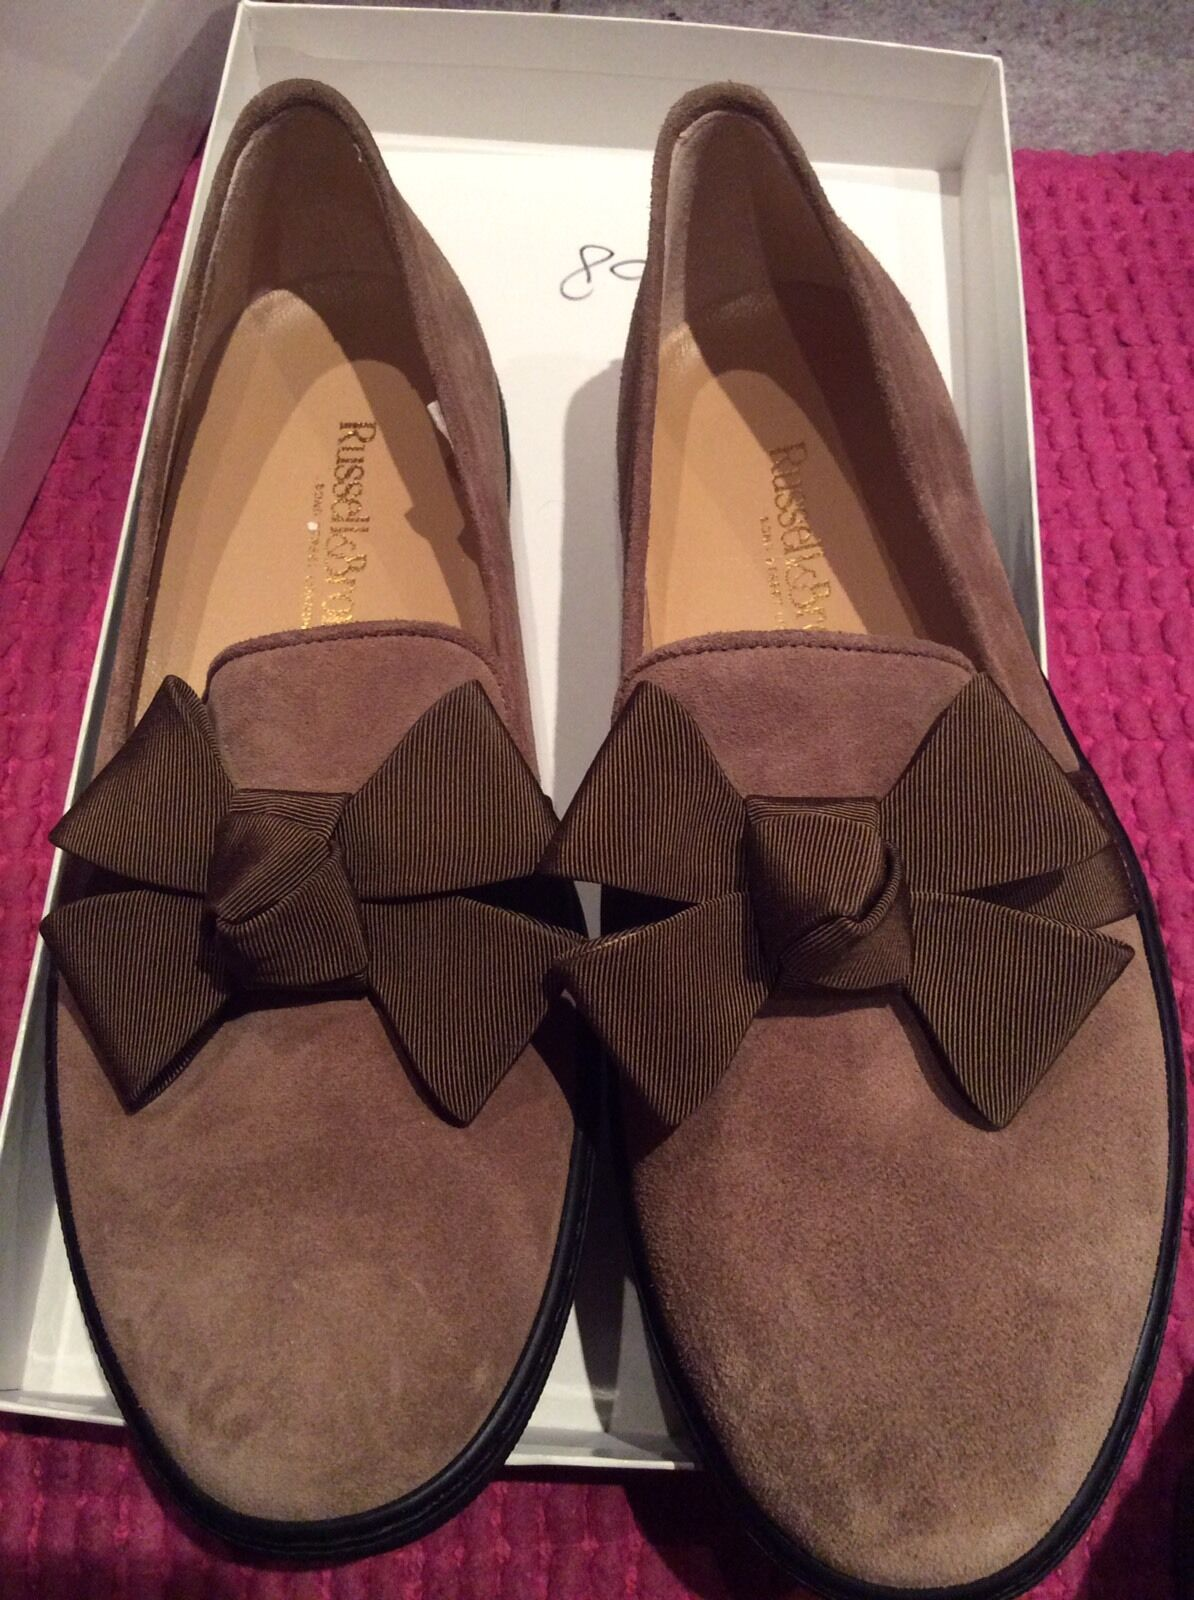 RUSSELL AND BROMLEY-Taille 37-Taille 4-Rrp -Marron Baskets Avec Noeud